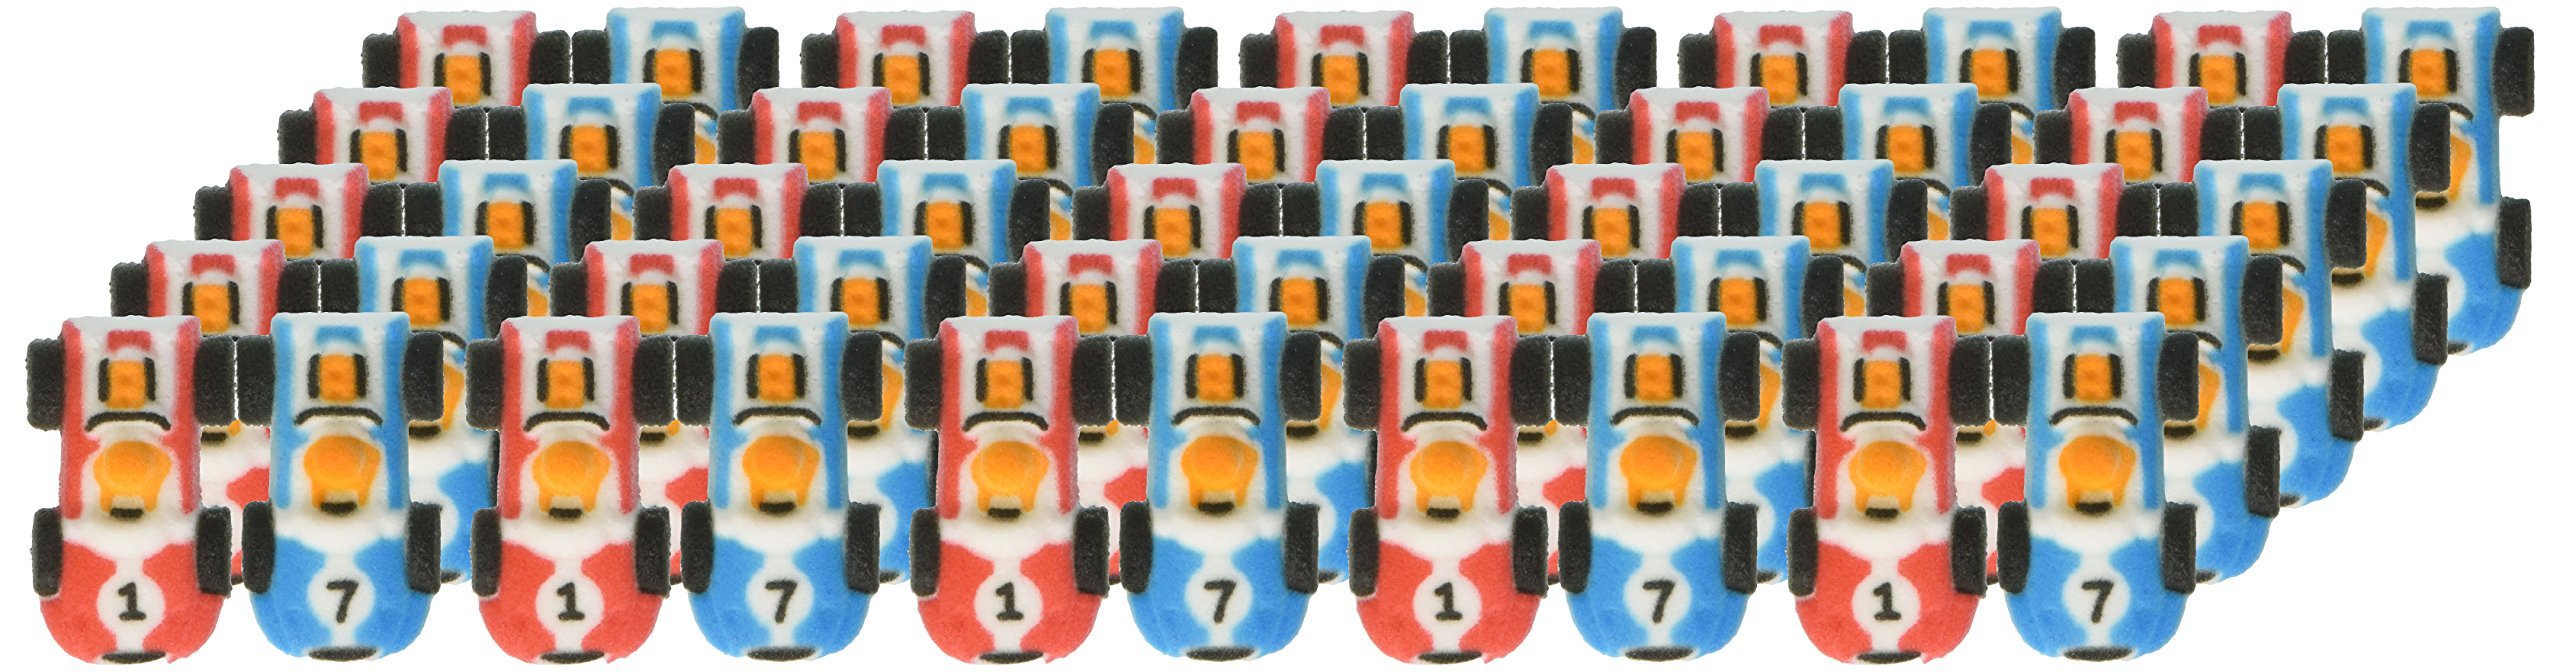 Lucks Dec-Ons Decorations Molded Sugar Cupcake Topper, Mini Race Cars Assortment, 2 Inch, 50 Count